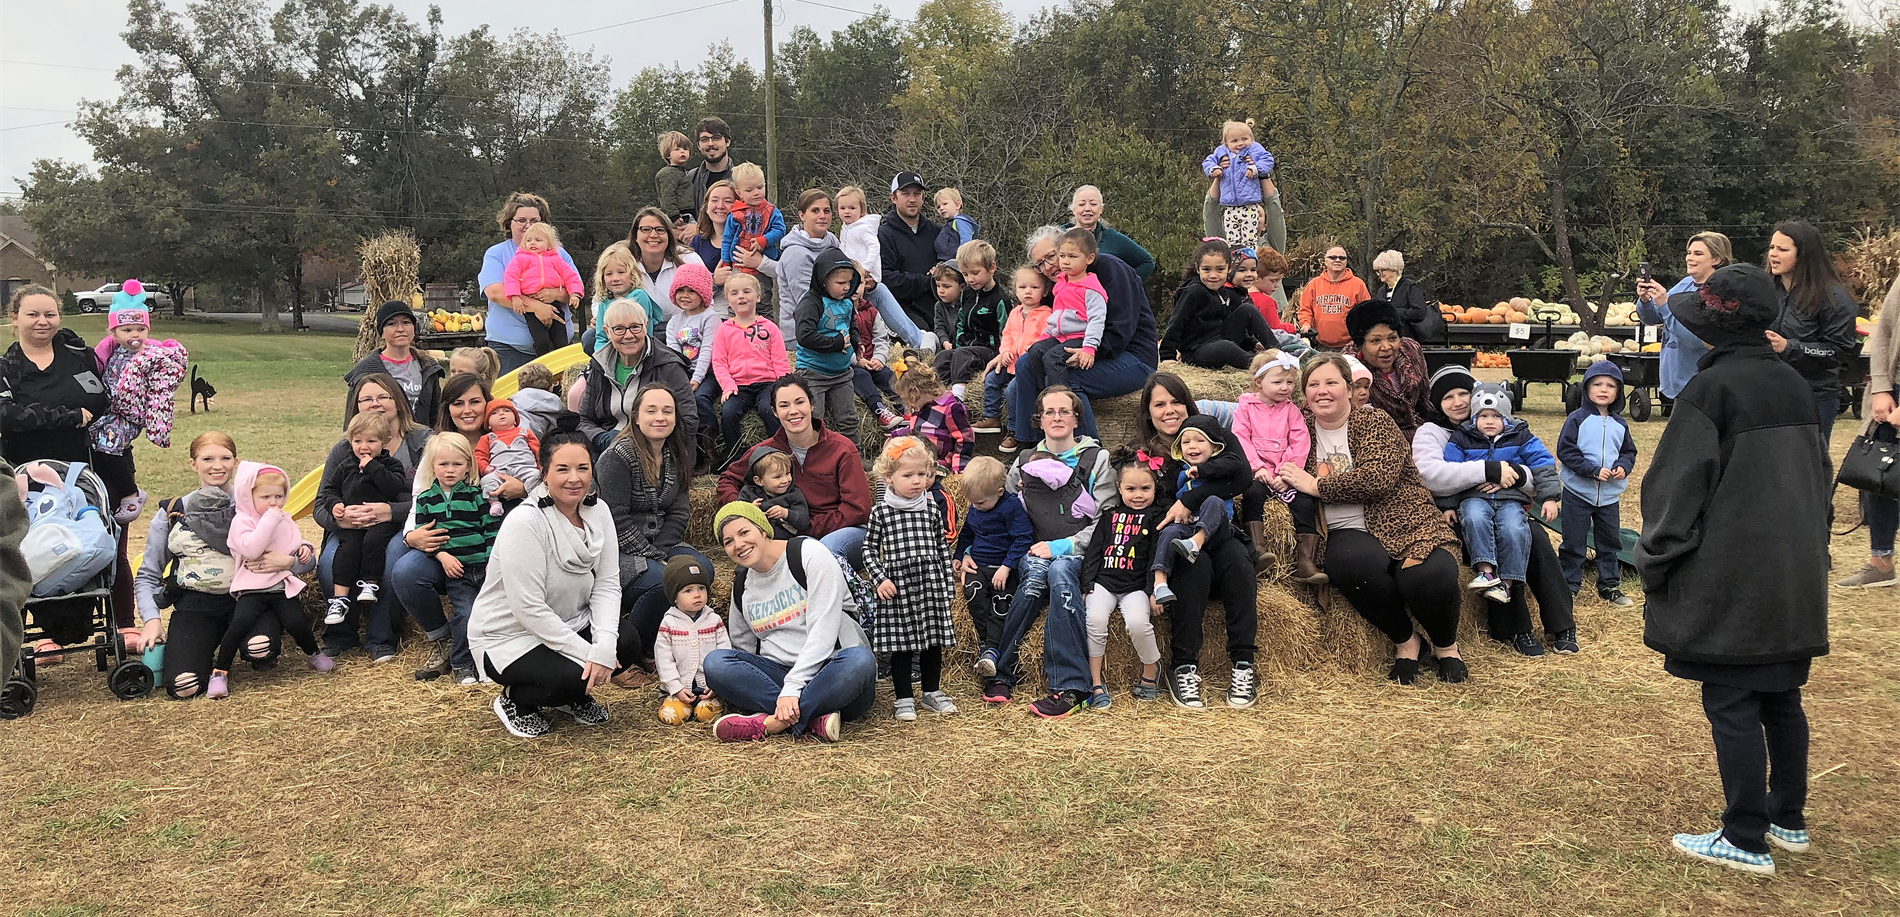 HCS Cradle School had a great time at the pumpkin patch.  Thank you United Way of Central Kentucky.